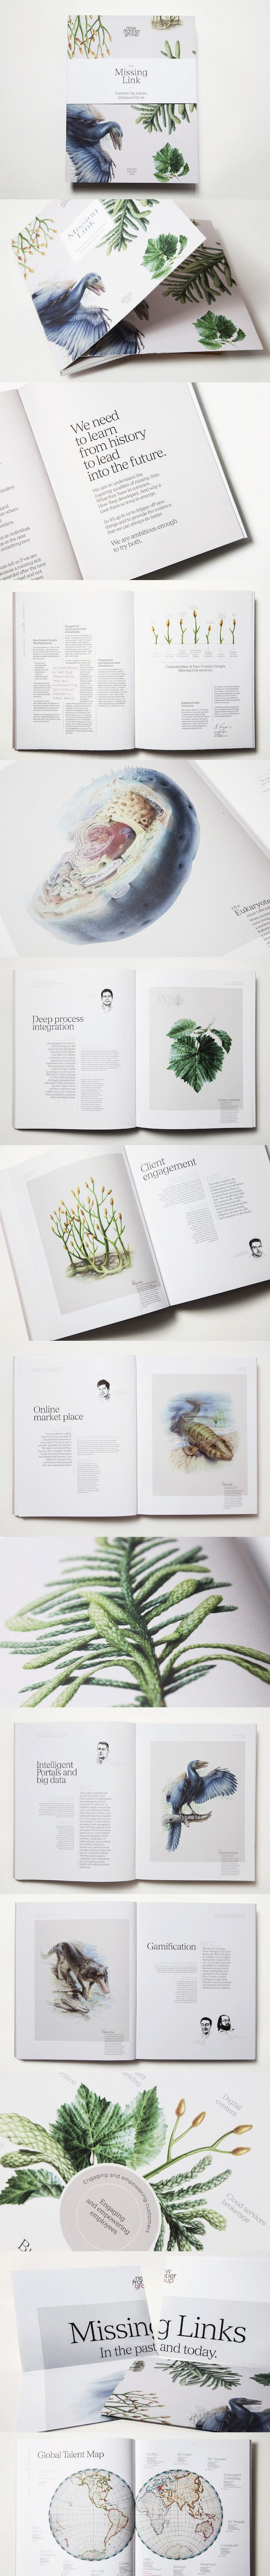 """""""The Missing Link"""" annnual report for New Frontier Group by This is Paper, featuring prehistoric flora & fauna illustrations. http://thisispaper.com/moodley-brand-identity-The-Missing-Link"""